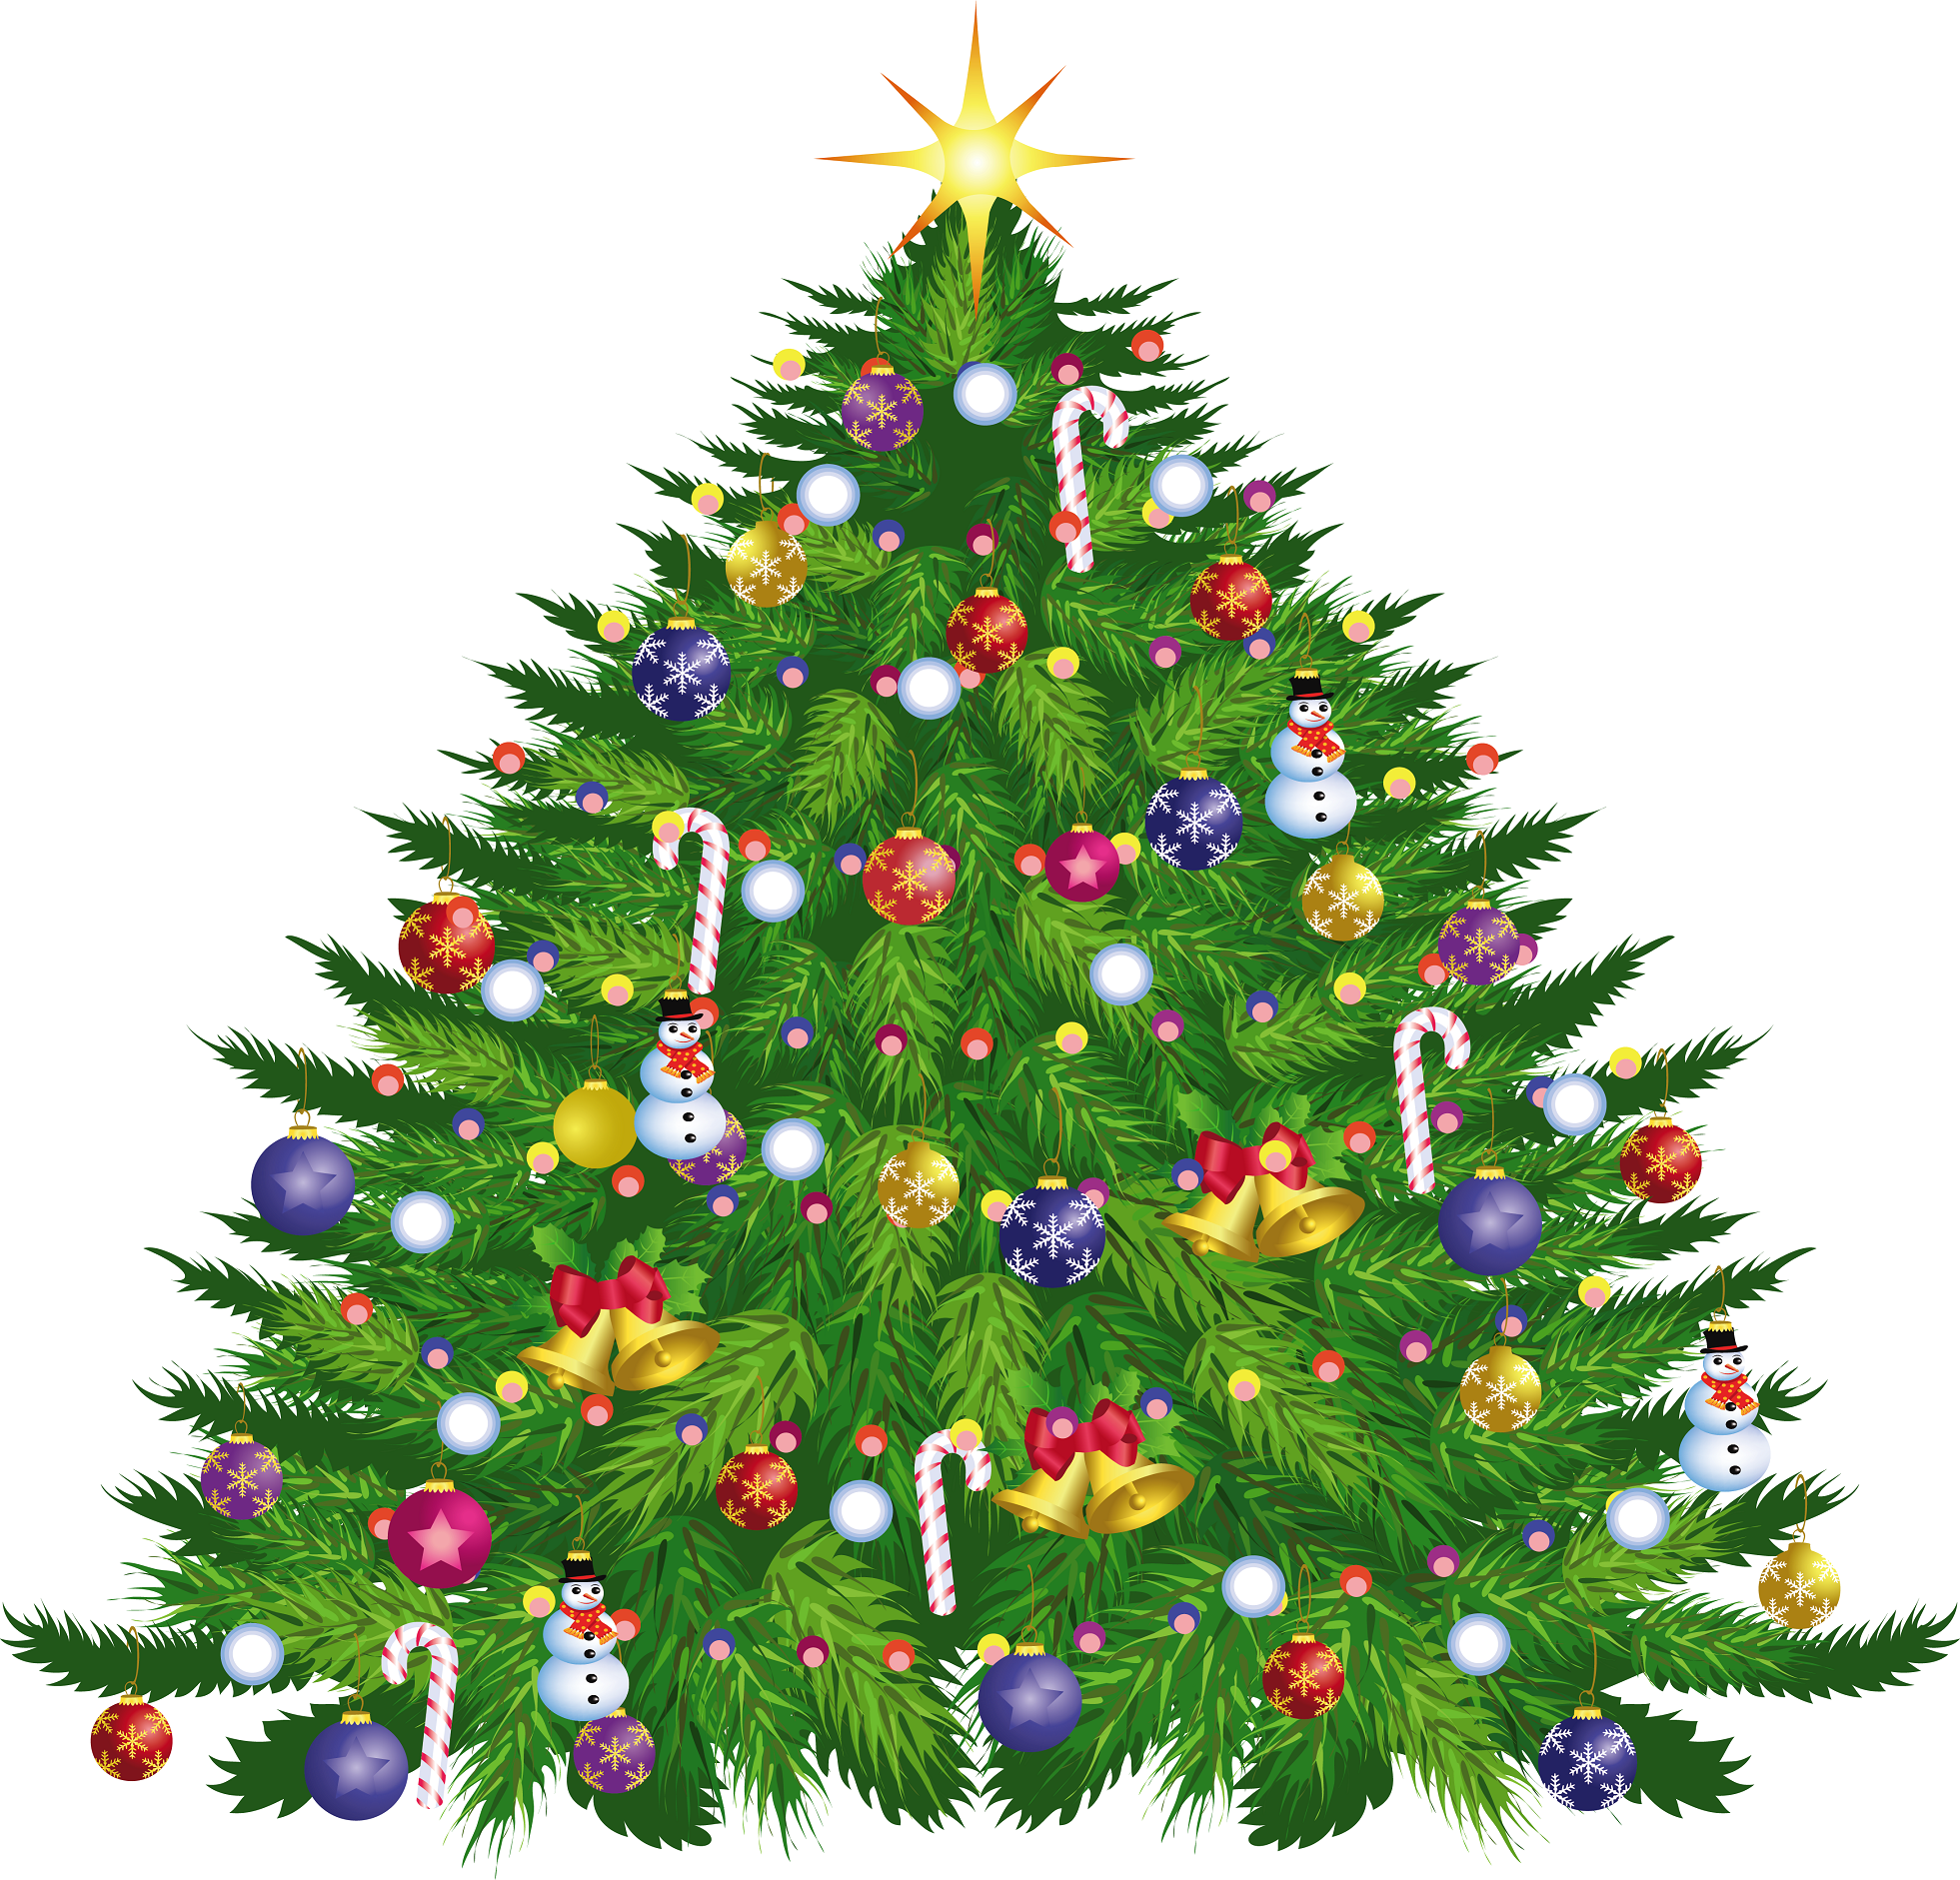 Christmas Tree Cliparts: Christmas Tree Clip Art Large